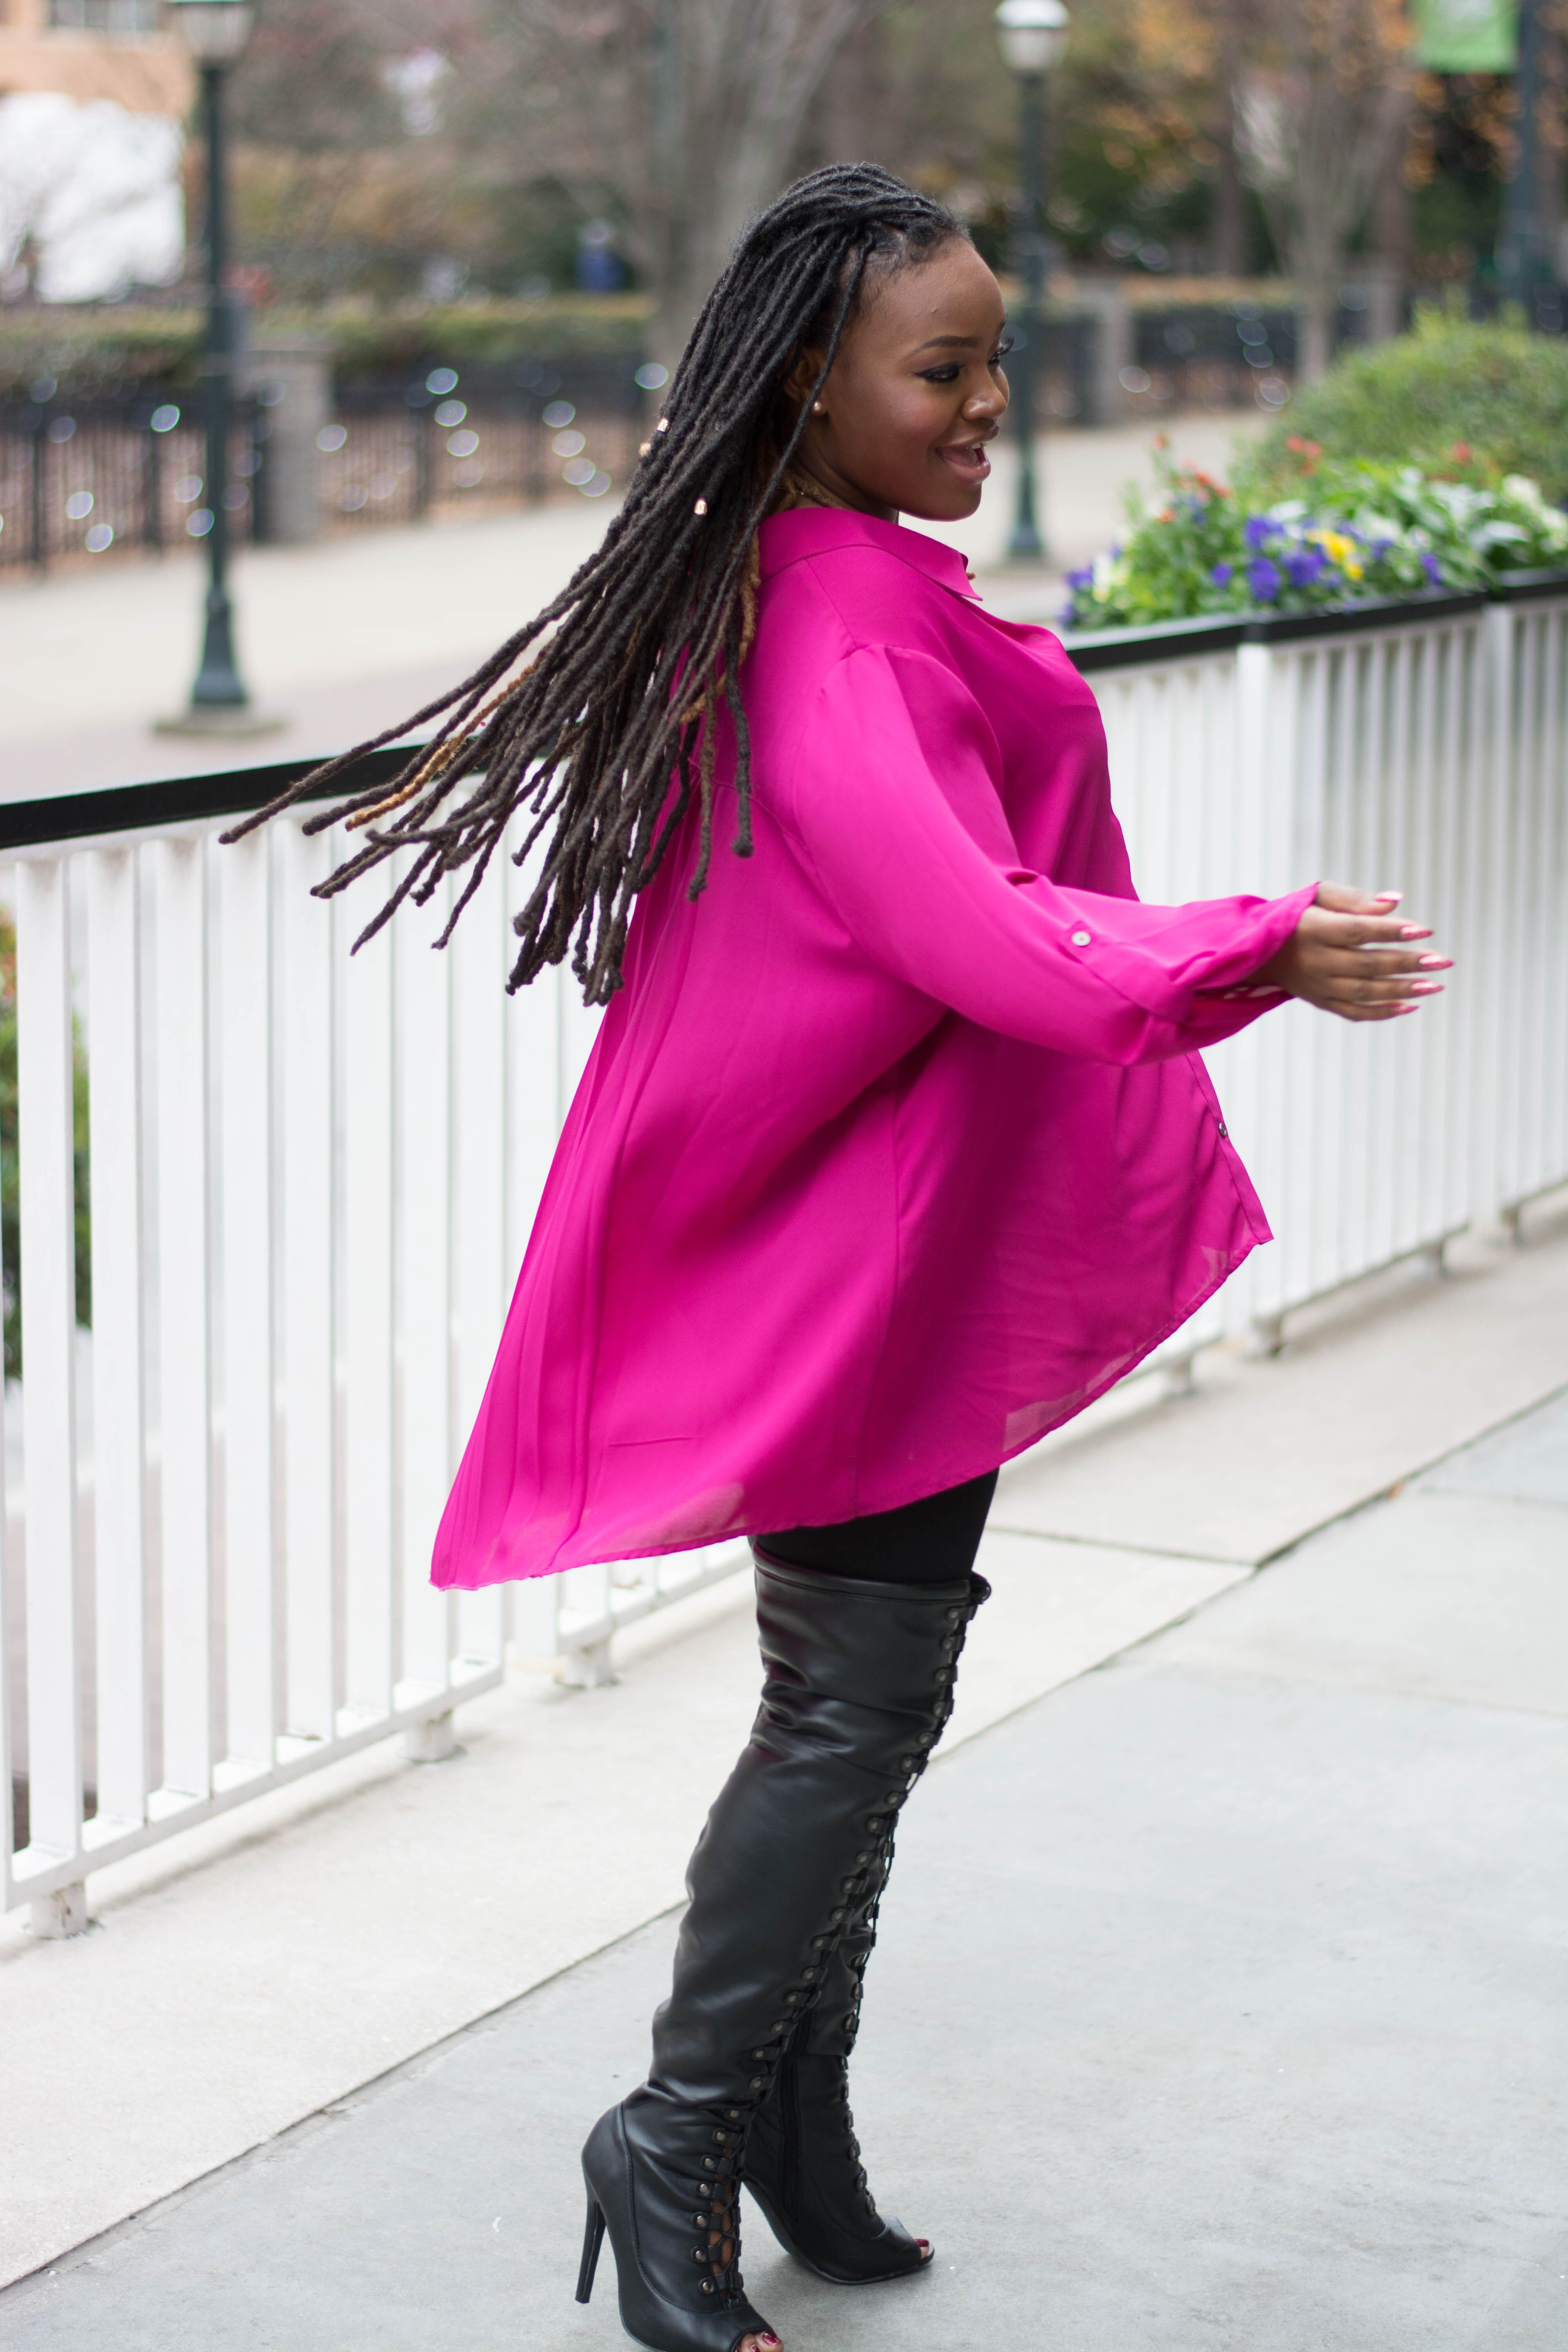 STYLE: TARGET PINK FLOWY OVERSIZED BLOUSE